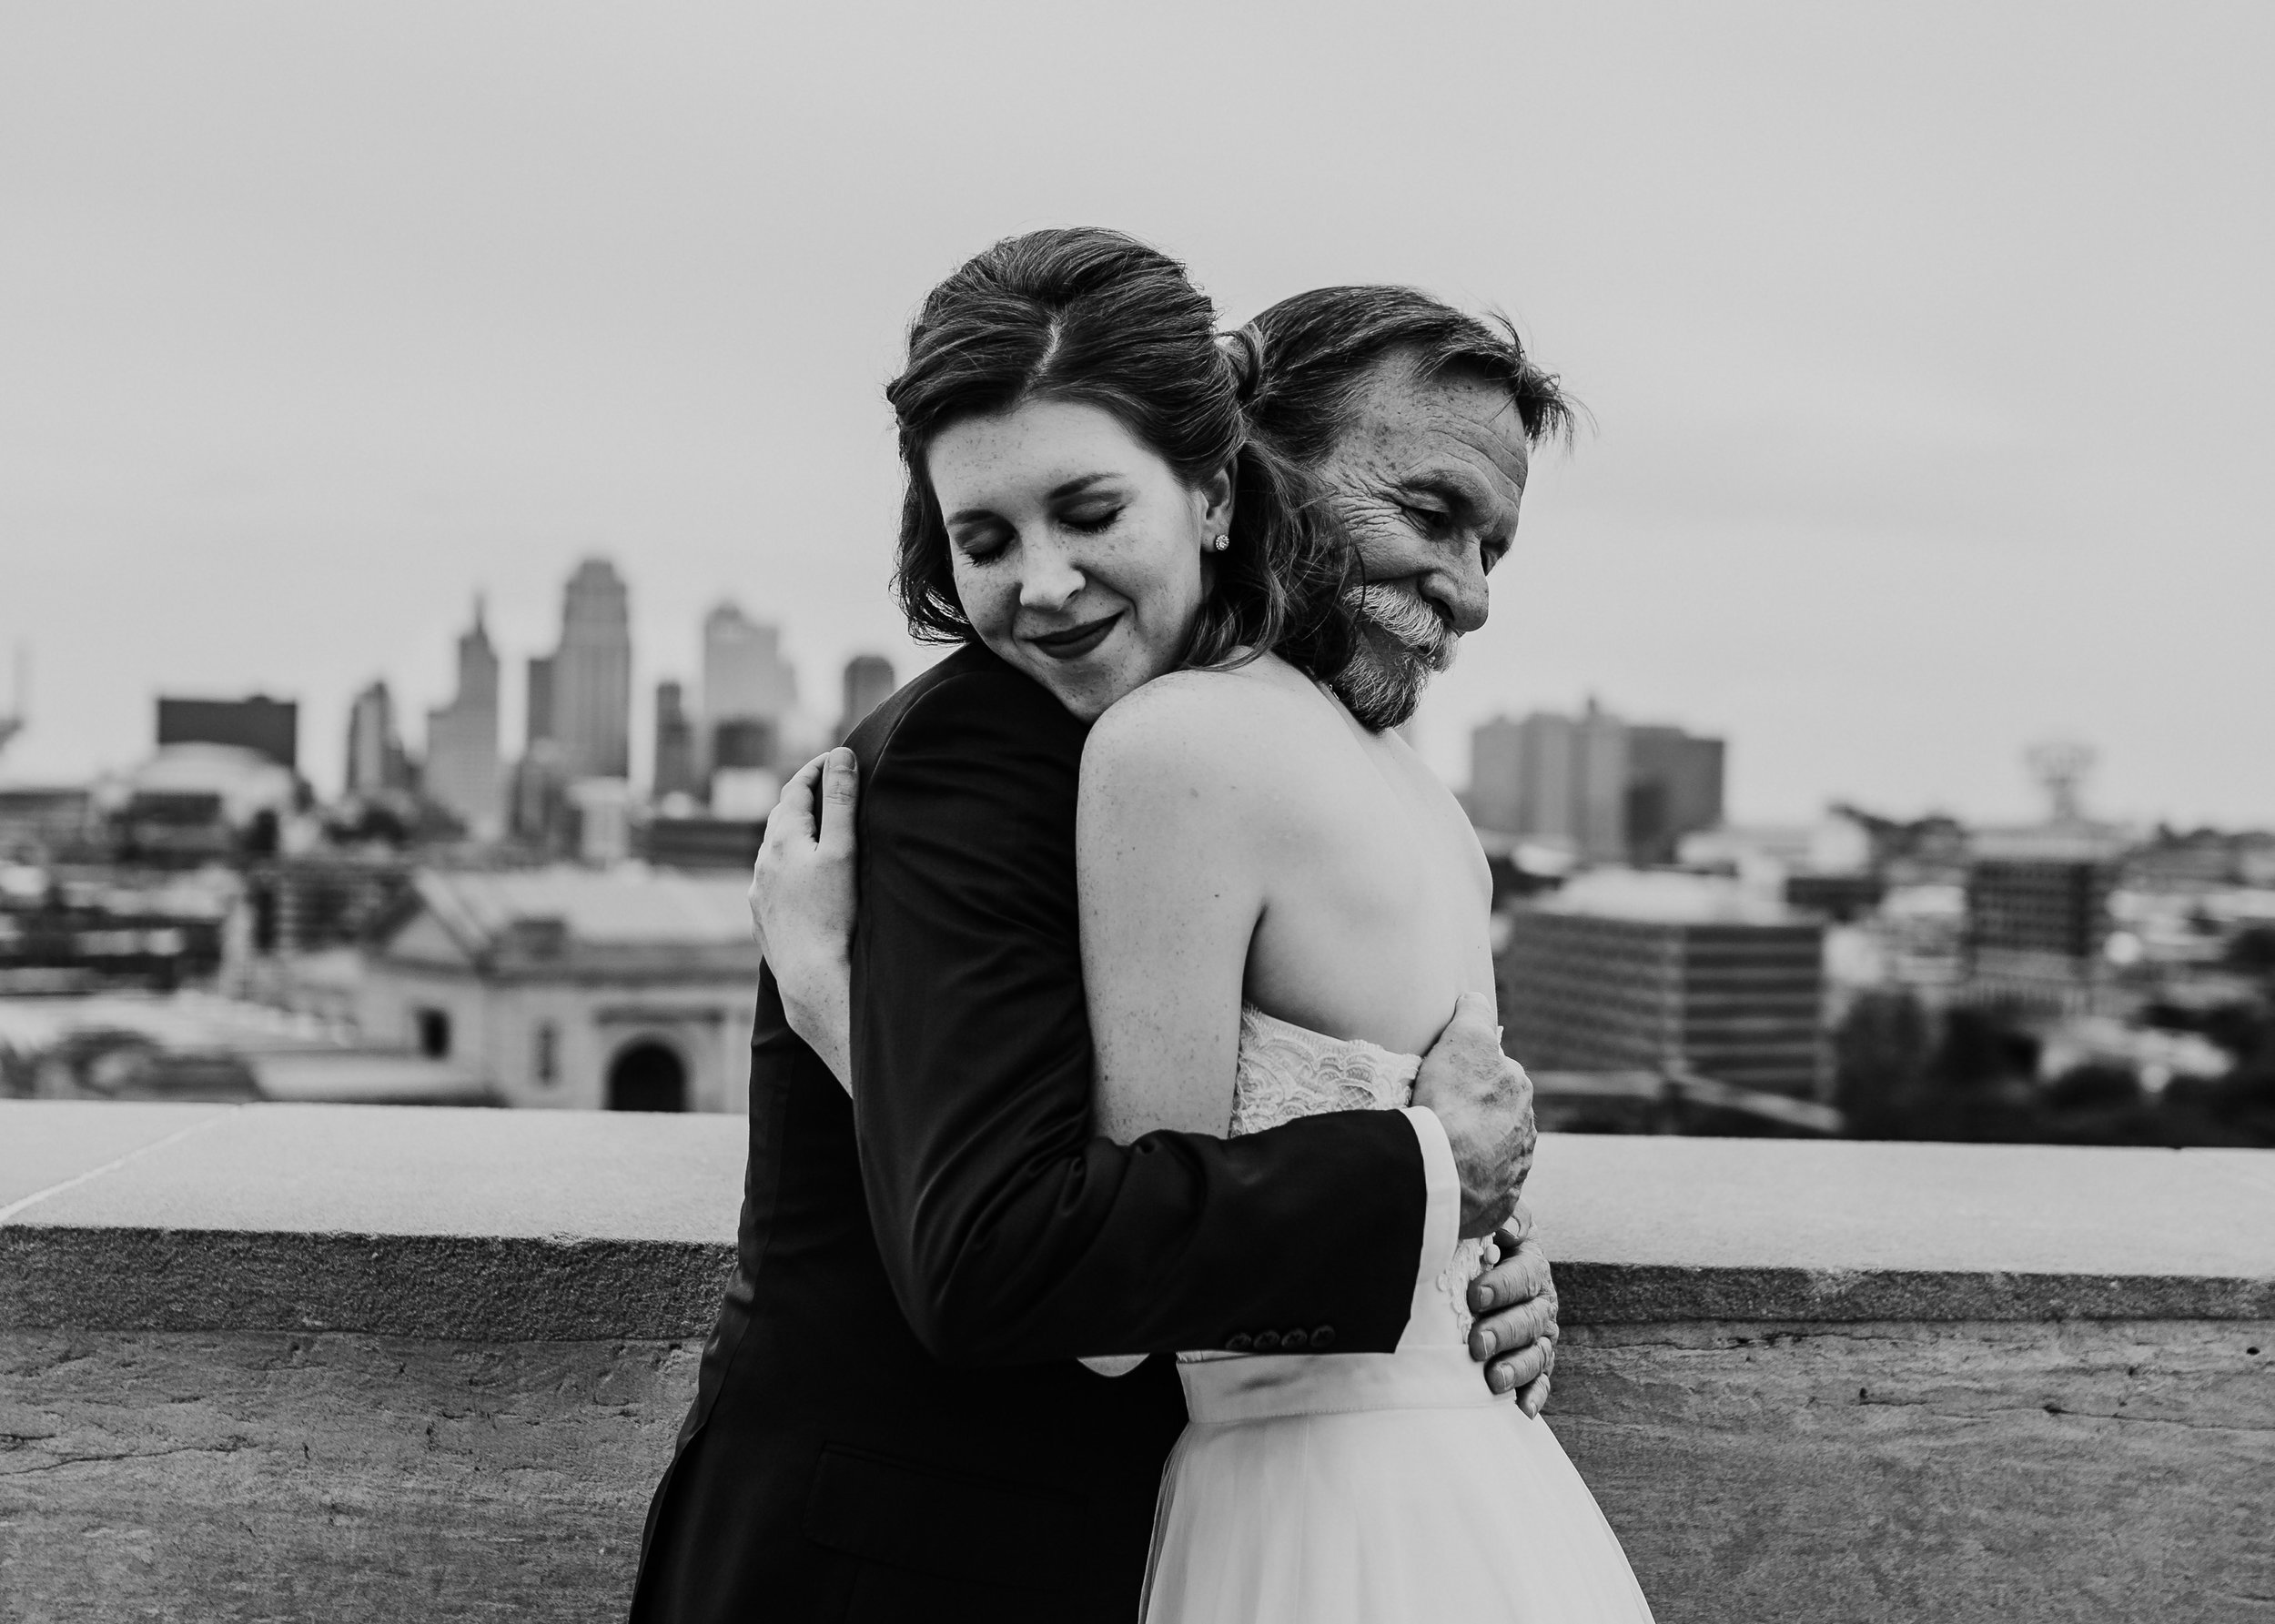 Family Portraits at Liberty Memorial skyline | Father and daughter |Shelbie & Jospeh's Summer Love Story : Kansas City Wedding | Hanna Hill Photography